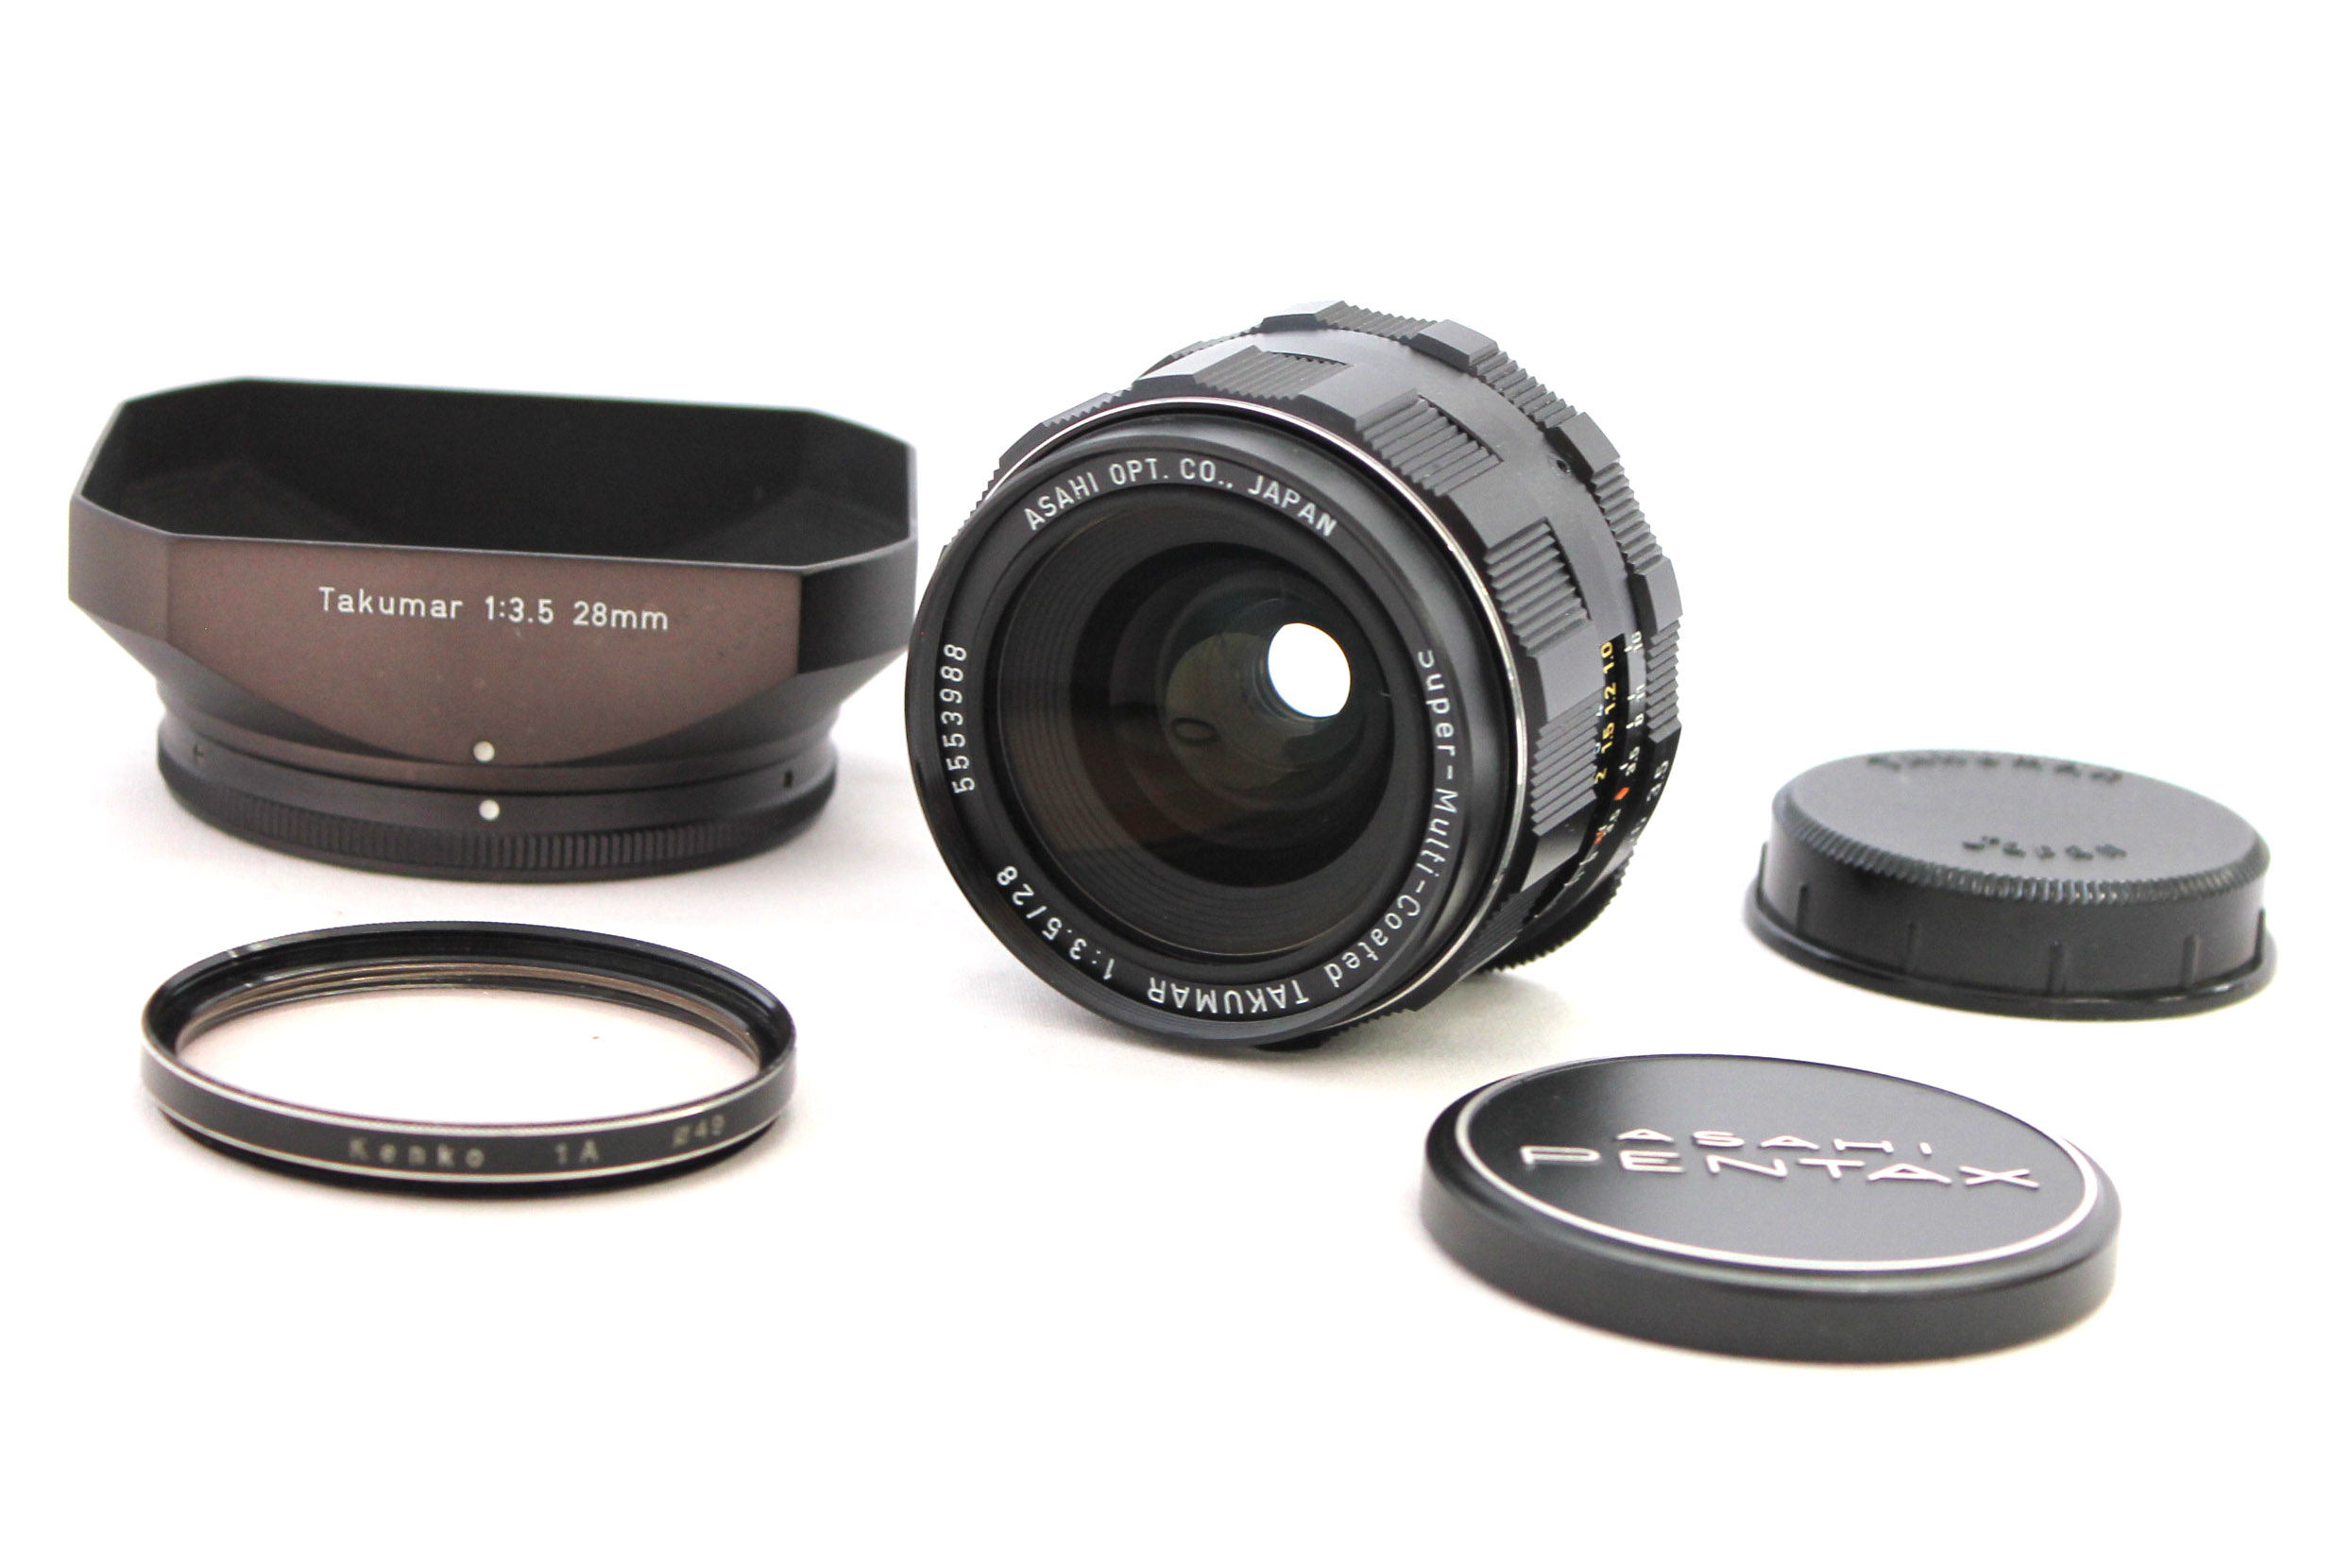 Japan Used Camera Shop | [Near Mint] Pentax SMC Super-Multi-Coated Takumar 28mm F/3.5 M42 Lens with Hood from Japan